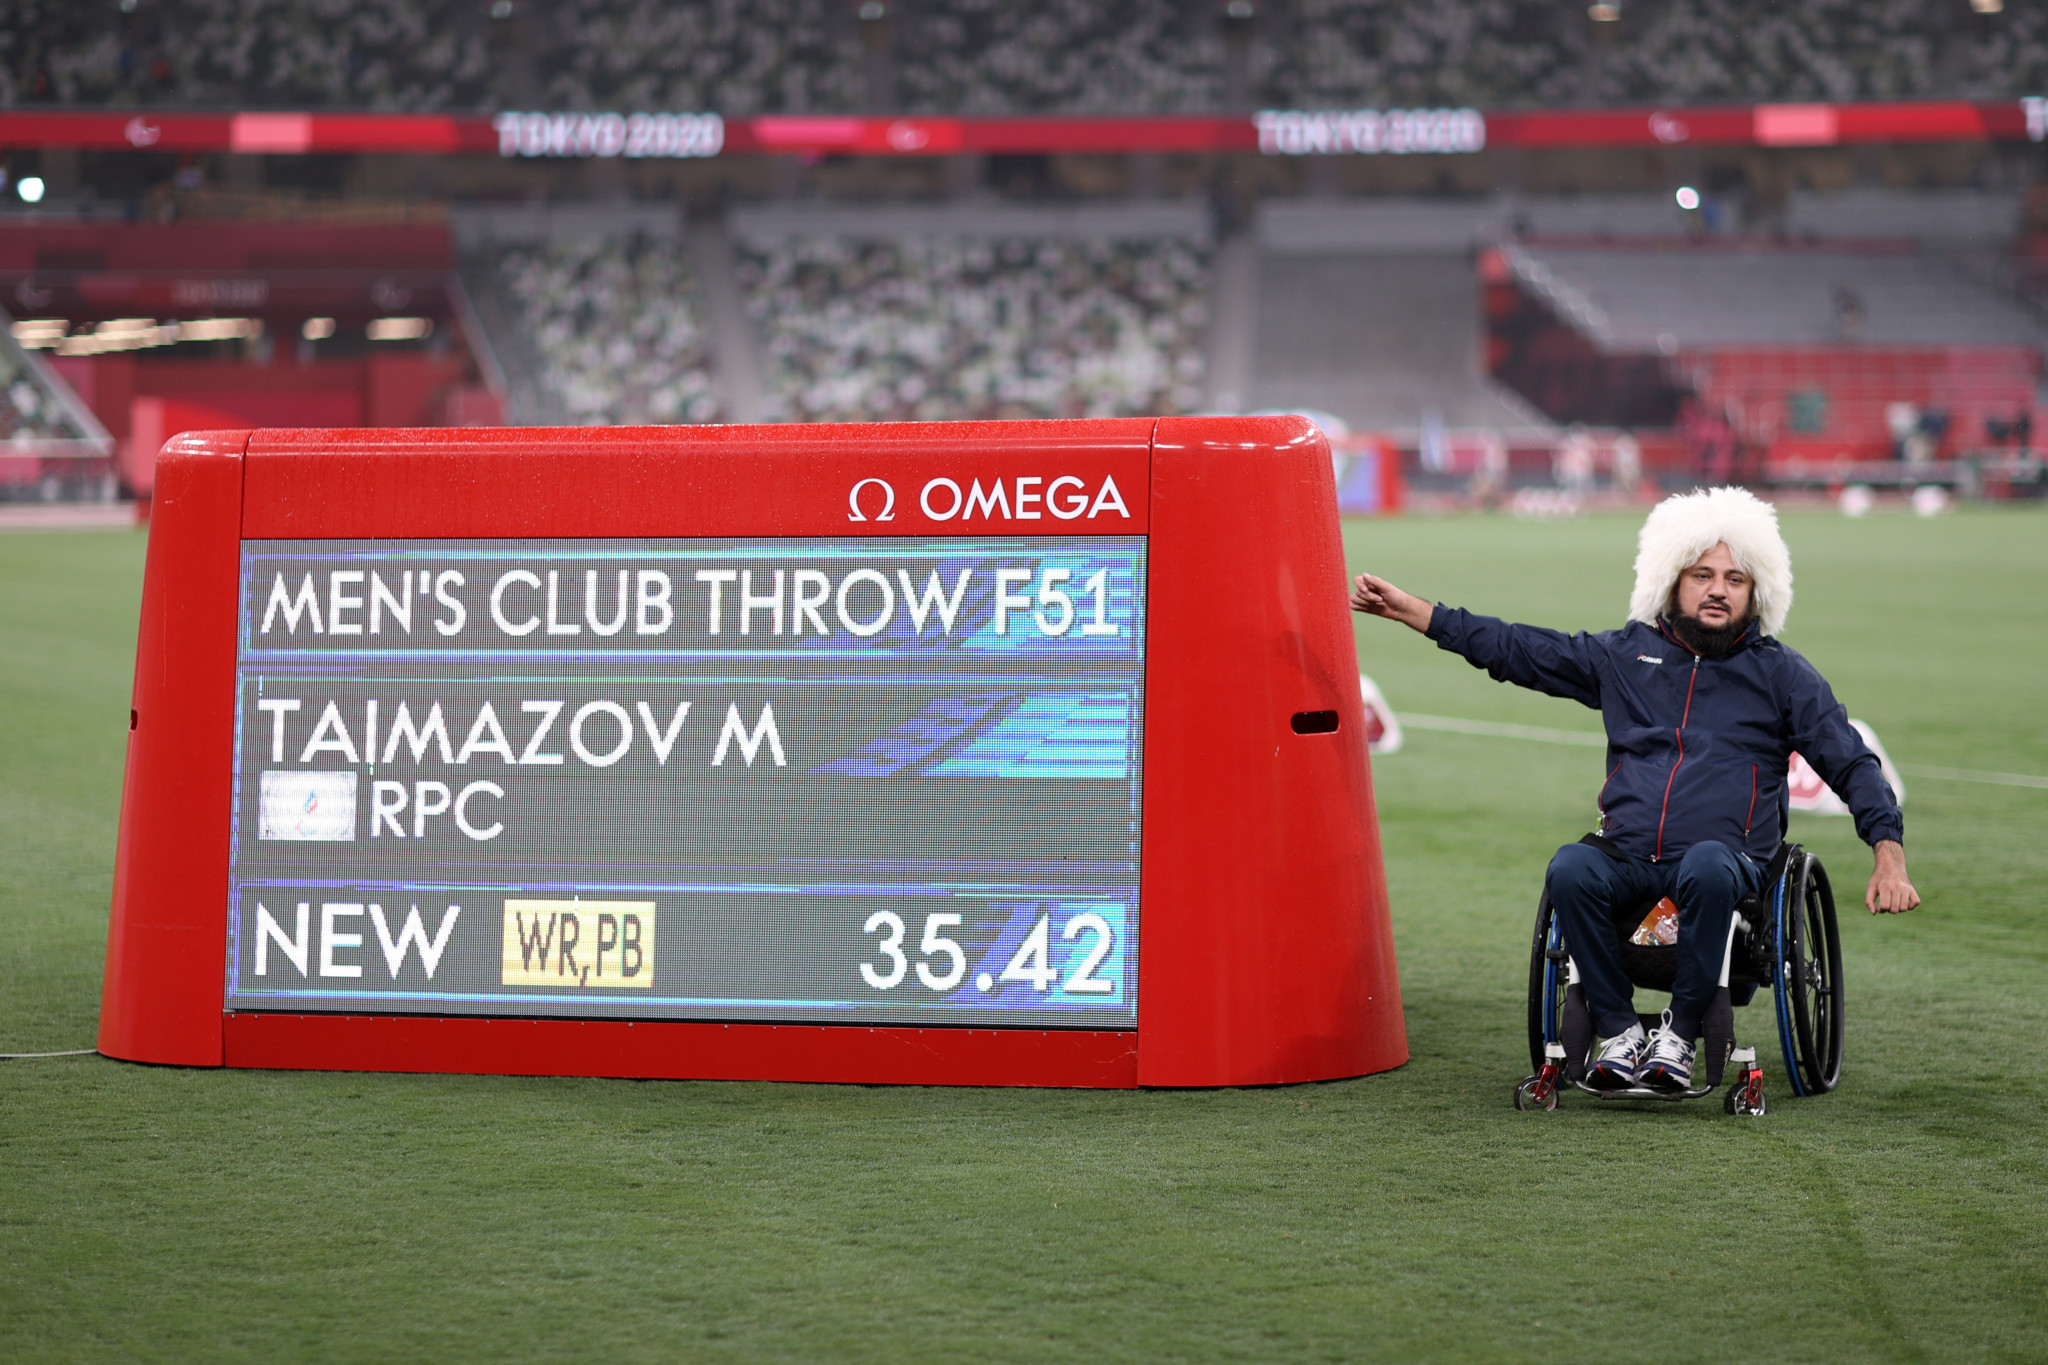 Musa Taimazov broke the world record in the men's F51 club throw with a distance of 35.42m ©Getty Images